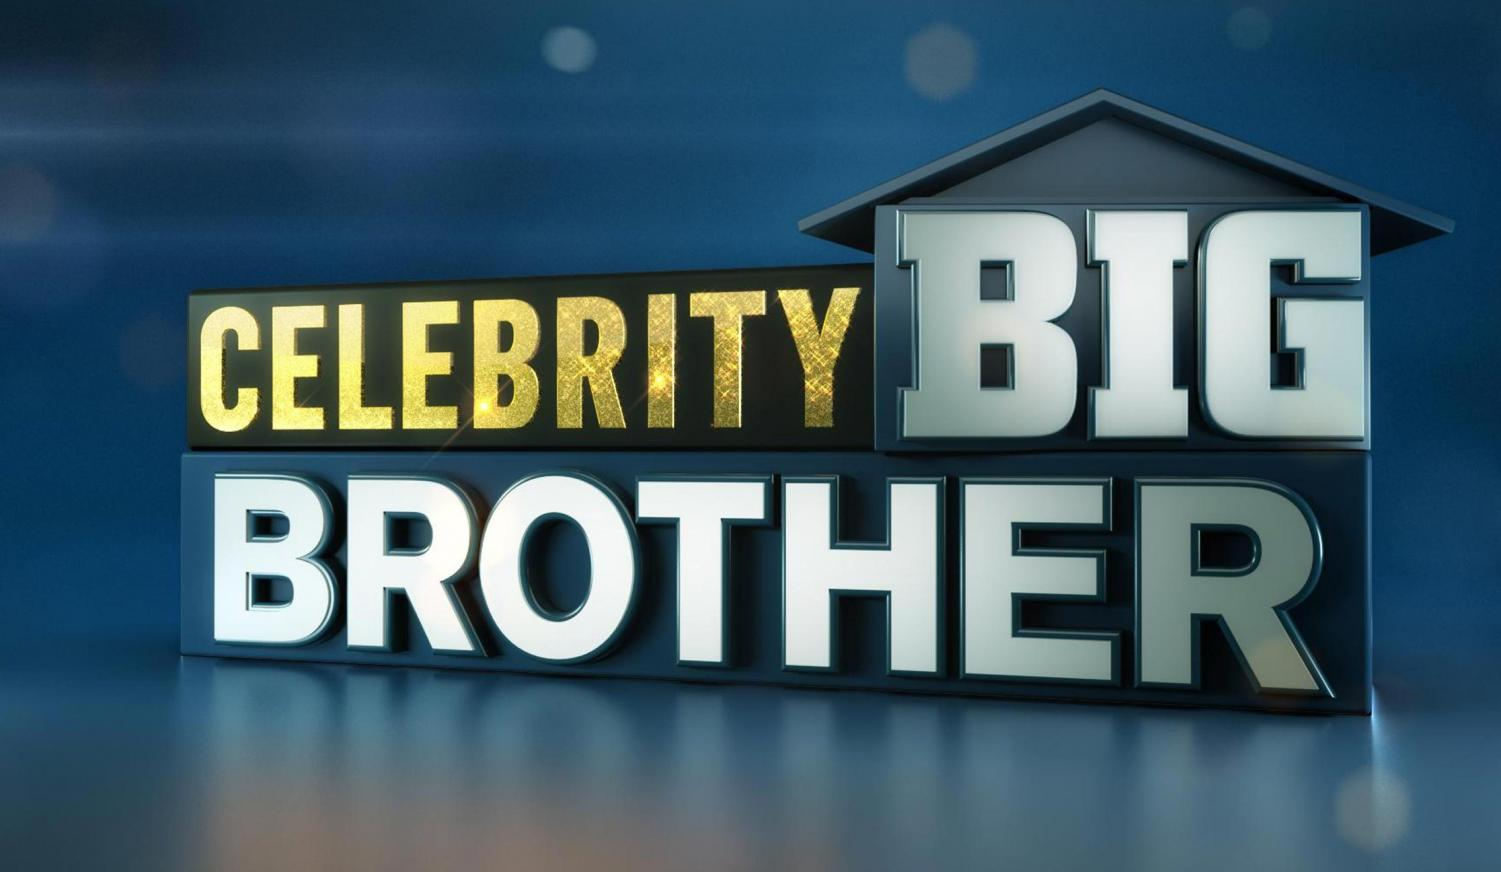 Drama, Competition, Cut Throat, and Tea! Celebrity Big Brother is the place that you want to be. Find out just what these celebrities will have to go through to make it to the final prize of $250,000!